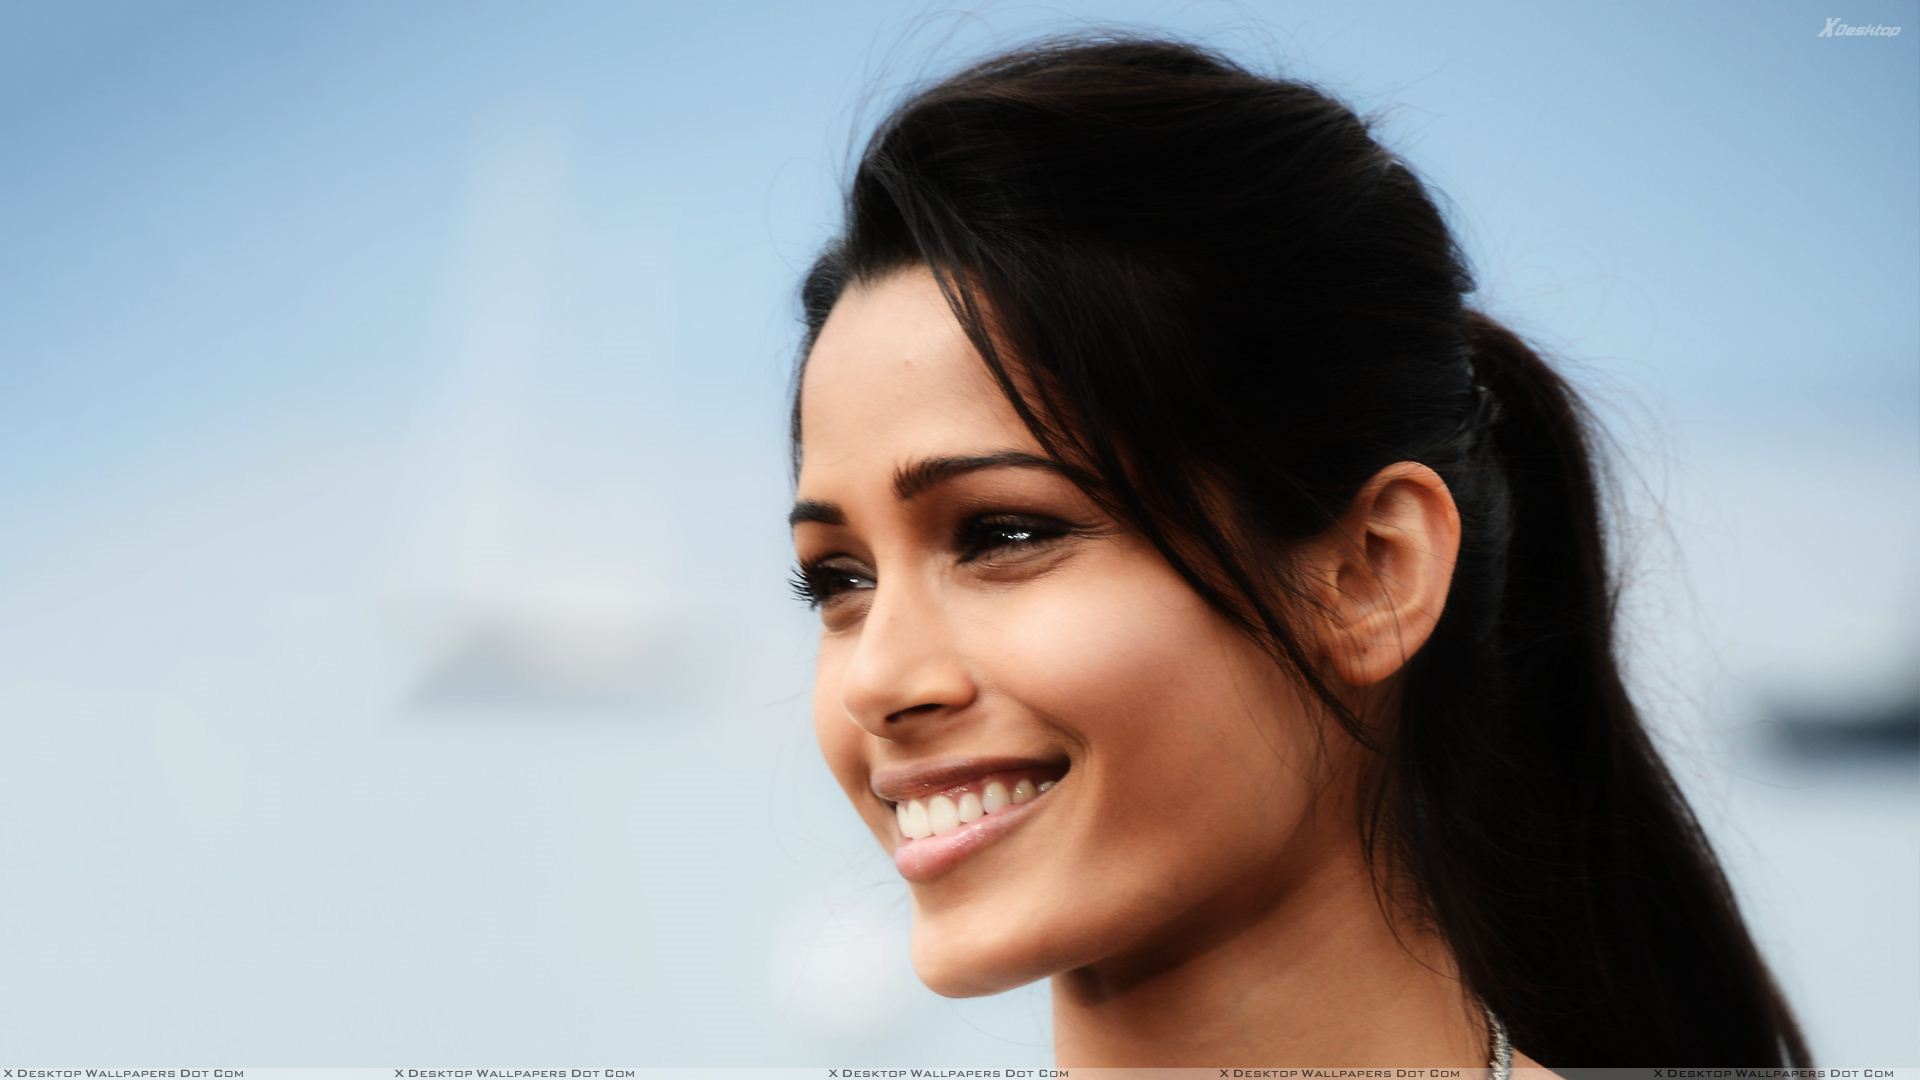 Freida Pinto Backgrounds, Compatible - PC, Mobile, Gadgets| 1920x1080 px